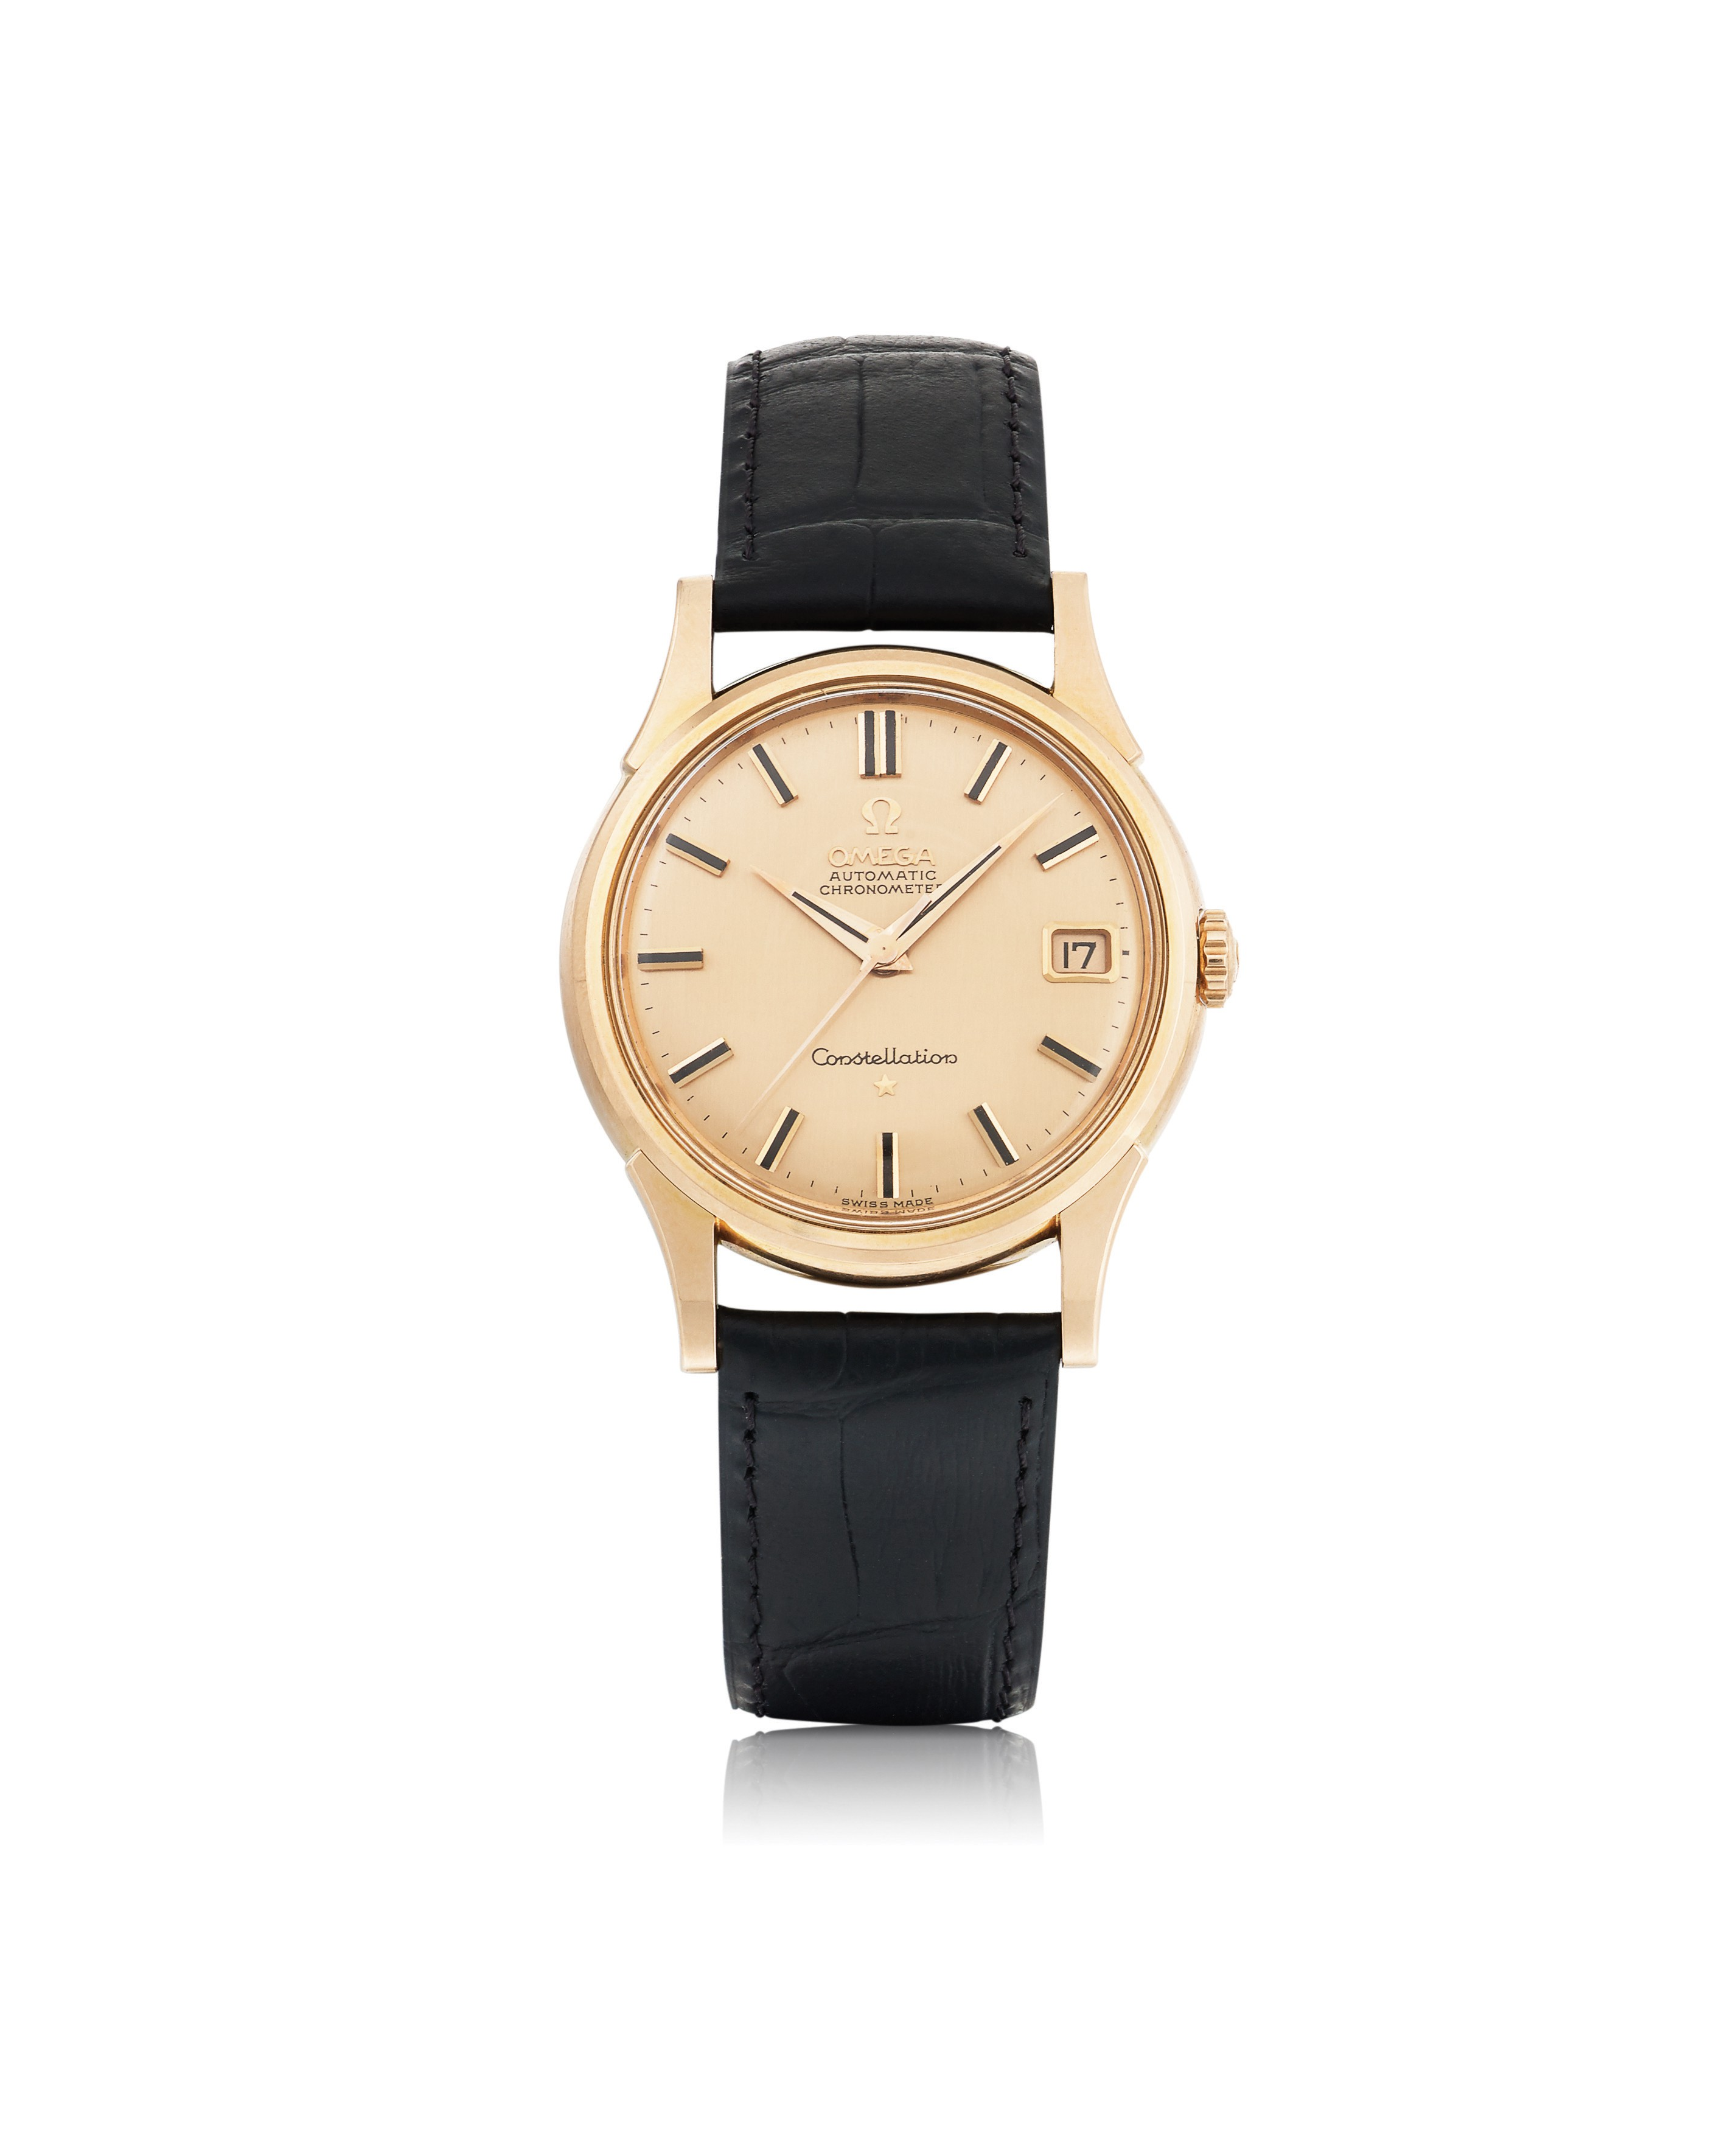 OMEGA | CONSTELLATION, REF 14393/4 SC 2 PINK GOLD WRISTWATCH WITH DATE CIRCA 1959